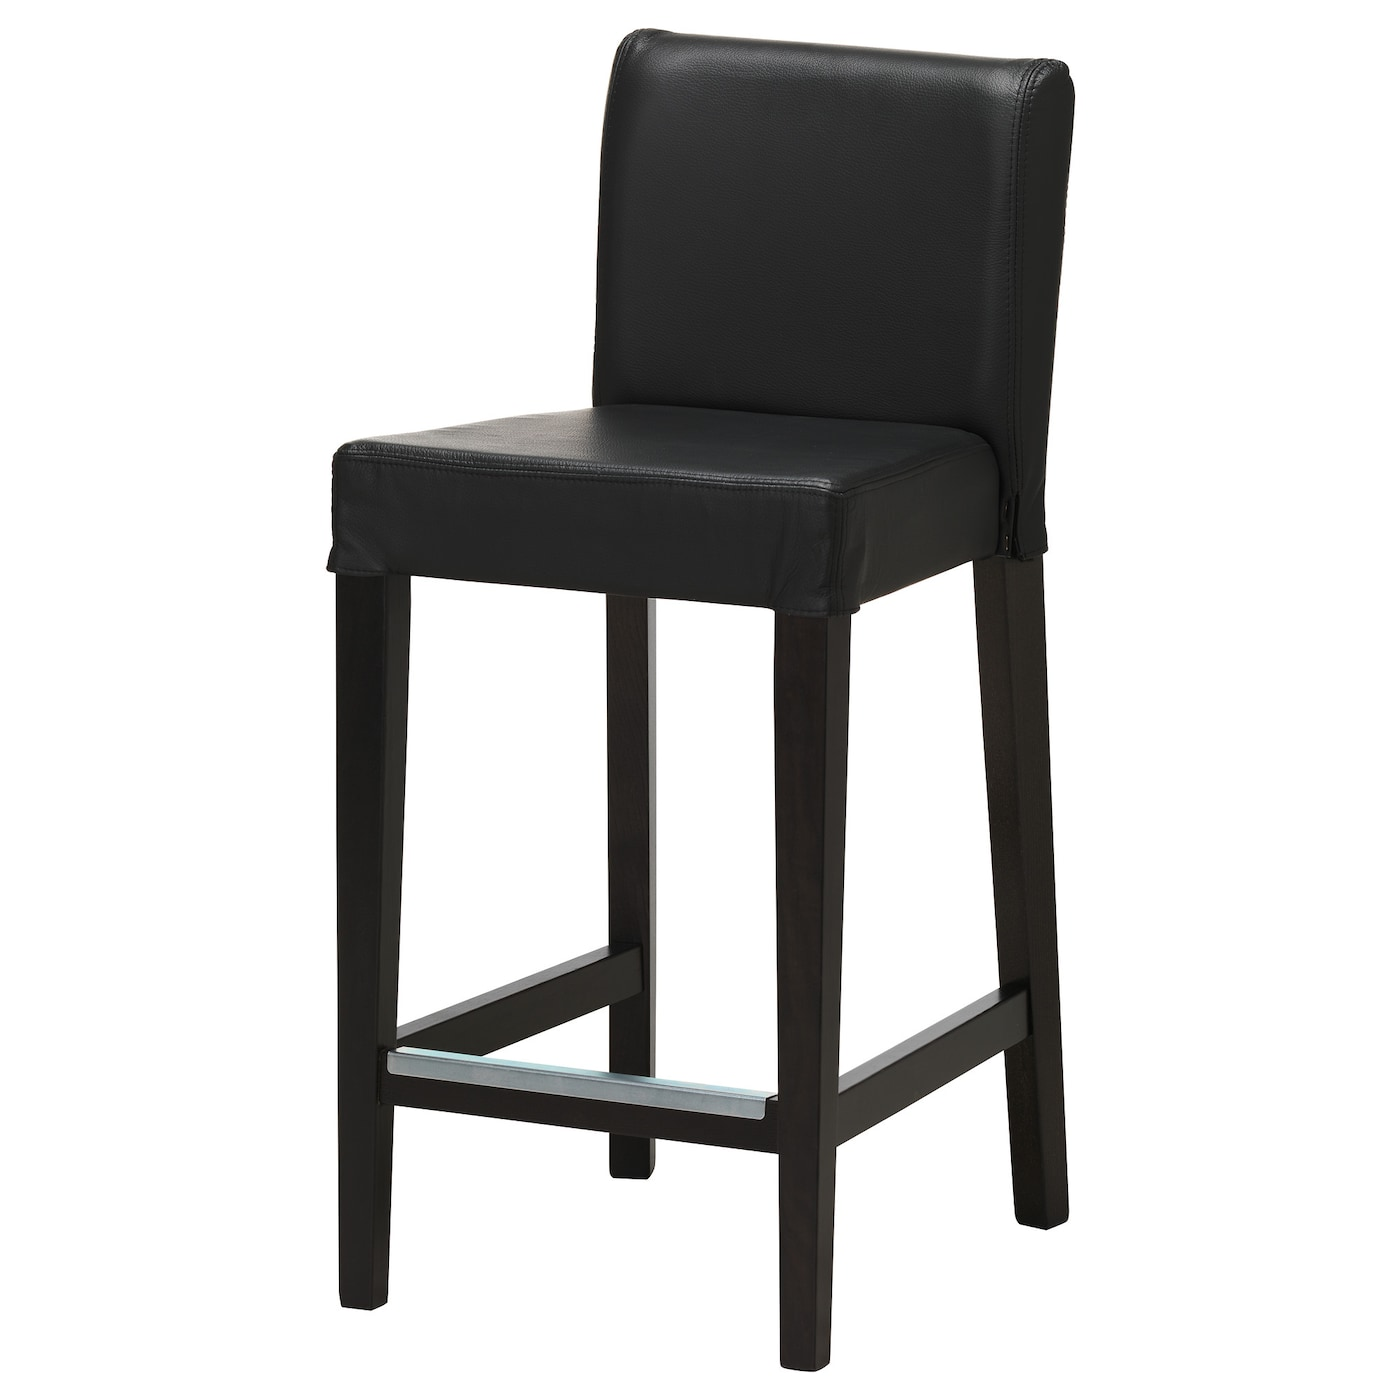 HENRIKSDAL Bar stool with backrest Brown black glose black 74 cm